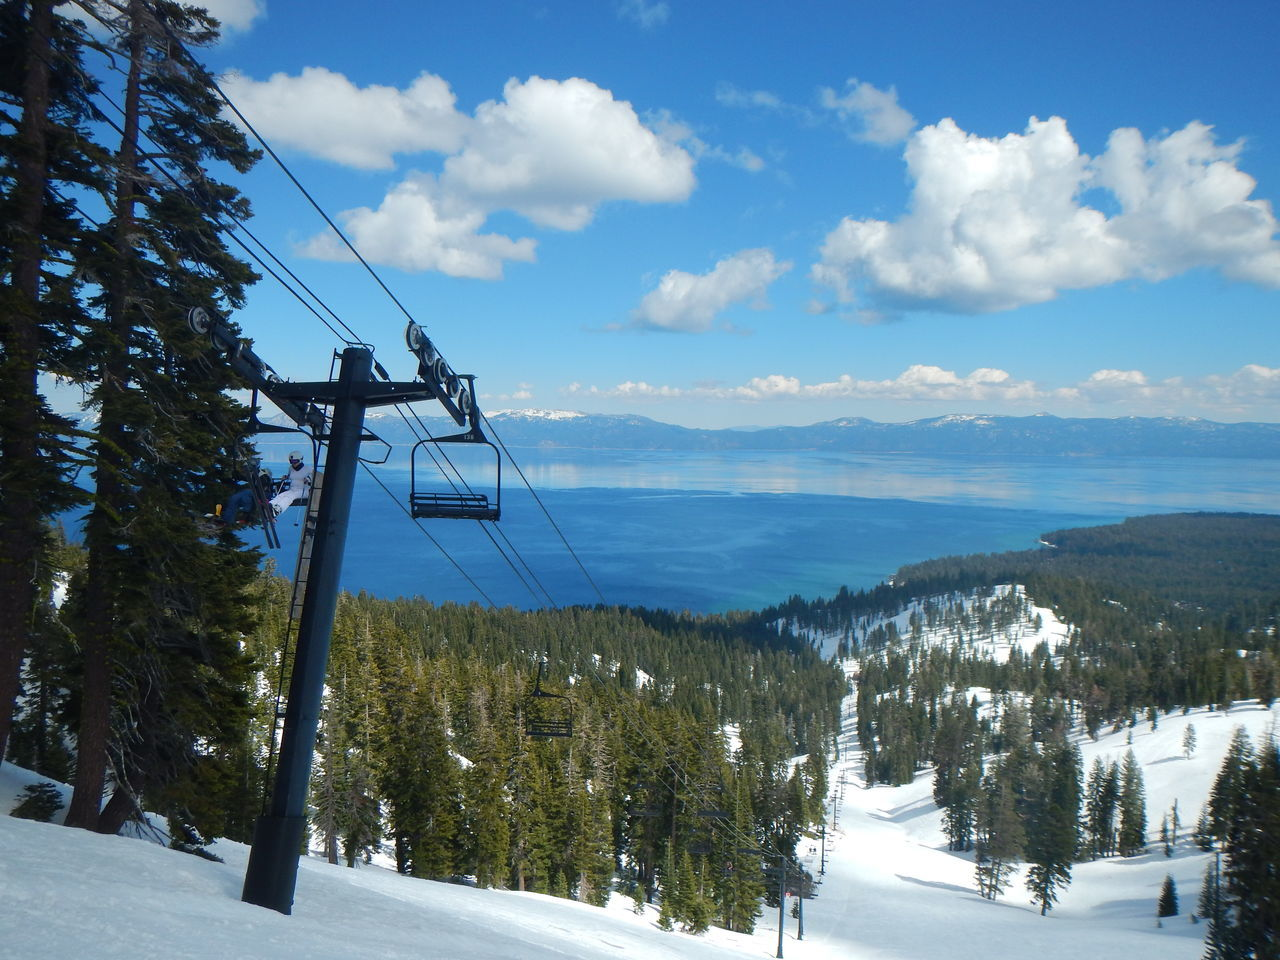 A beautiful Tahoe Day in the Winter. Beauty In Nature Cable Cloud - Sky Cold Temperature Idyllic Landscape Mode Of Transport Mountain Mountain Range Nature Non-urban Scene Overhead Cable Car Scenics Ski Lift Sky Snow Tahoe Tahoe Blue Tourism Tranquil Scene Tranquility Transportation Tree Weather Winter